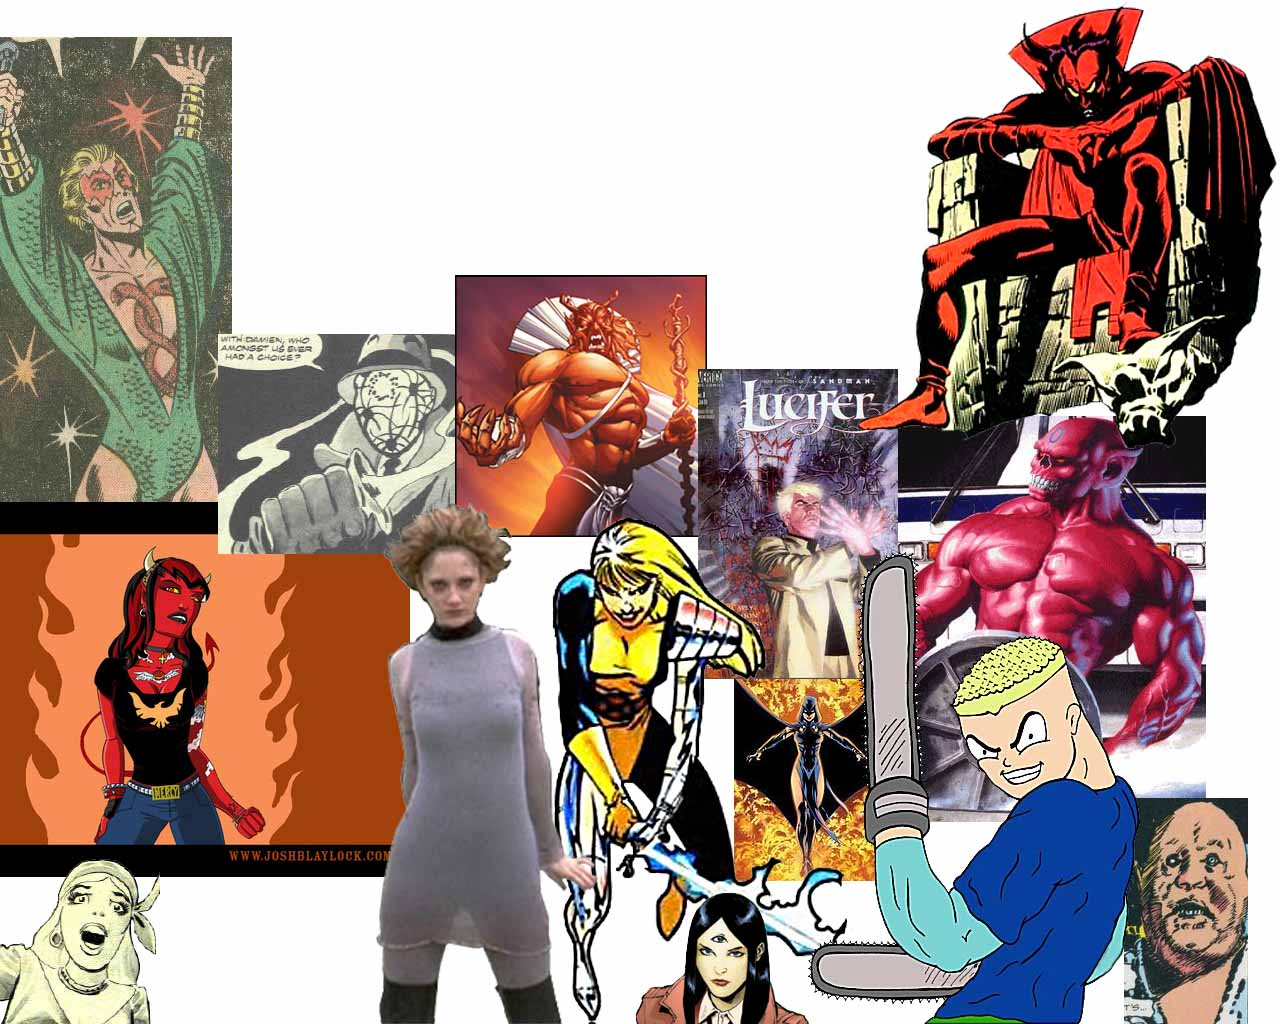 Demonolatry Superheroes, Villains, Other Comic Book Characters